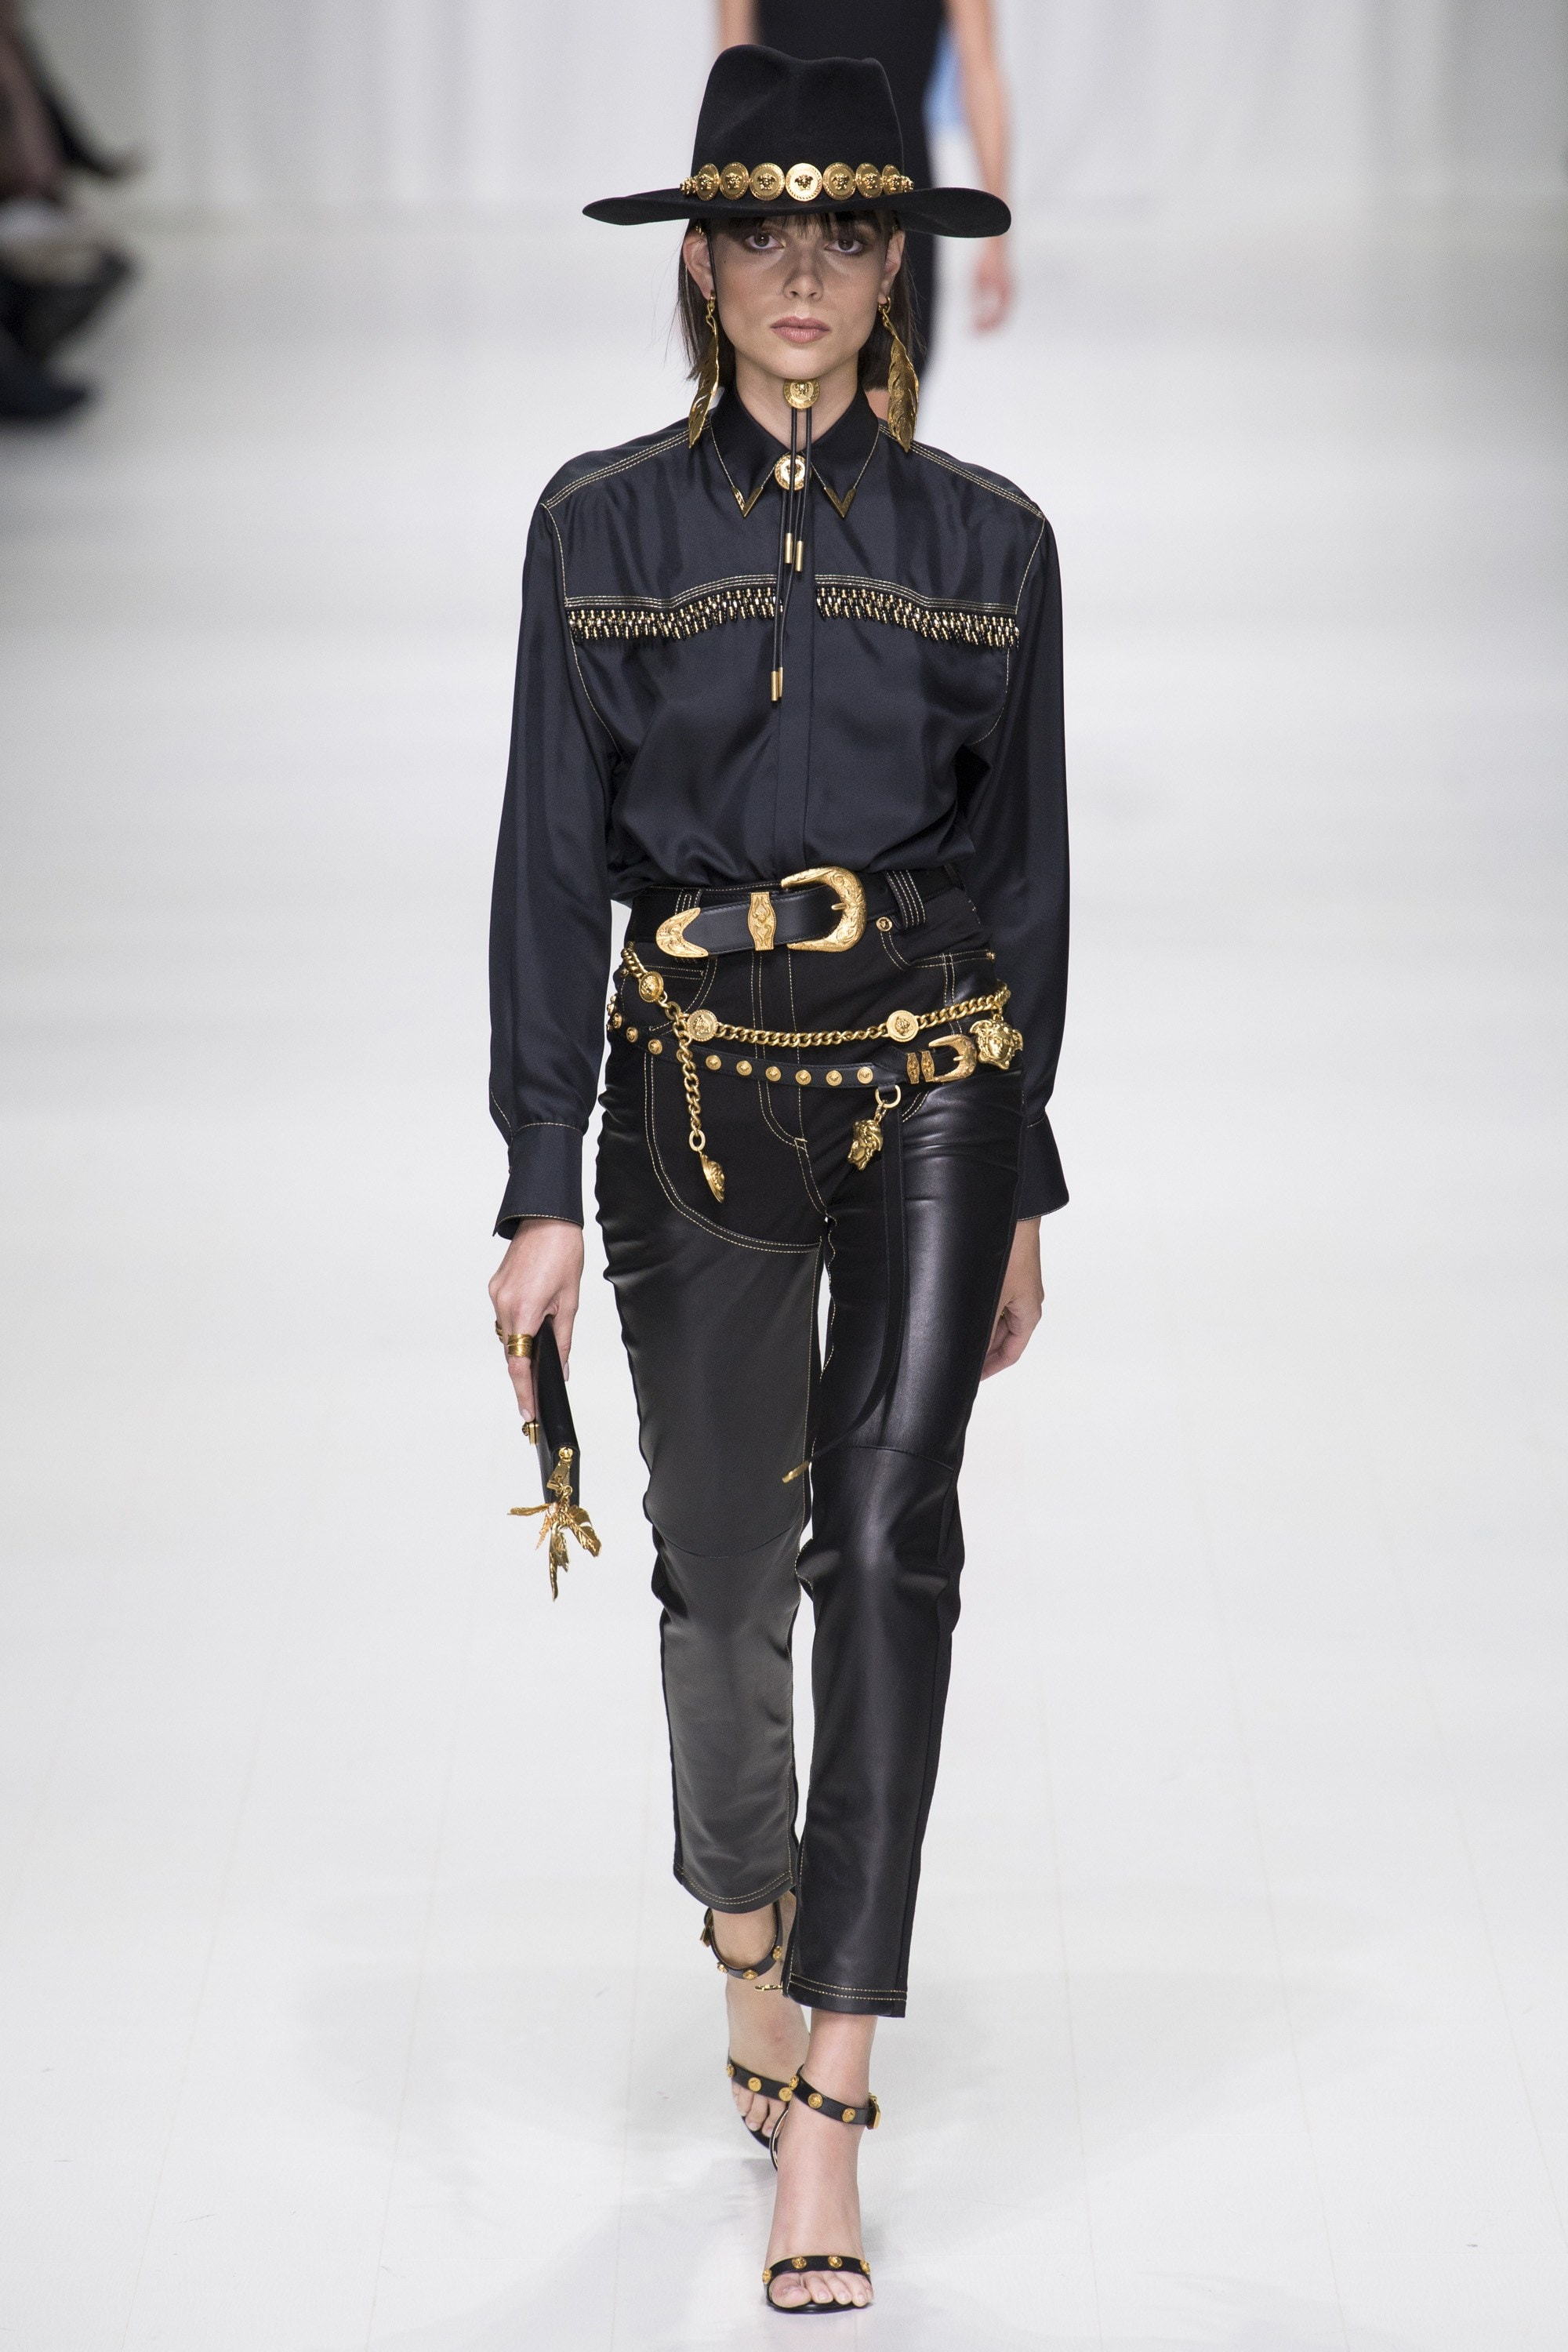 Western, Cowboy Look, Western Trend, SS18, Western Outfit, Fringes, Trendy Tuesday, Style, Fashion, Fashion Inspiration, Spring Fashion, SS18, Spring Summer 2018, Shop the Look, Versace, Donatella Versace, Gianni Versace, All Black, Milan Fashion Week, MFW